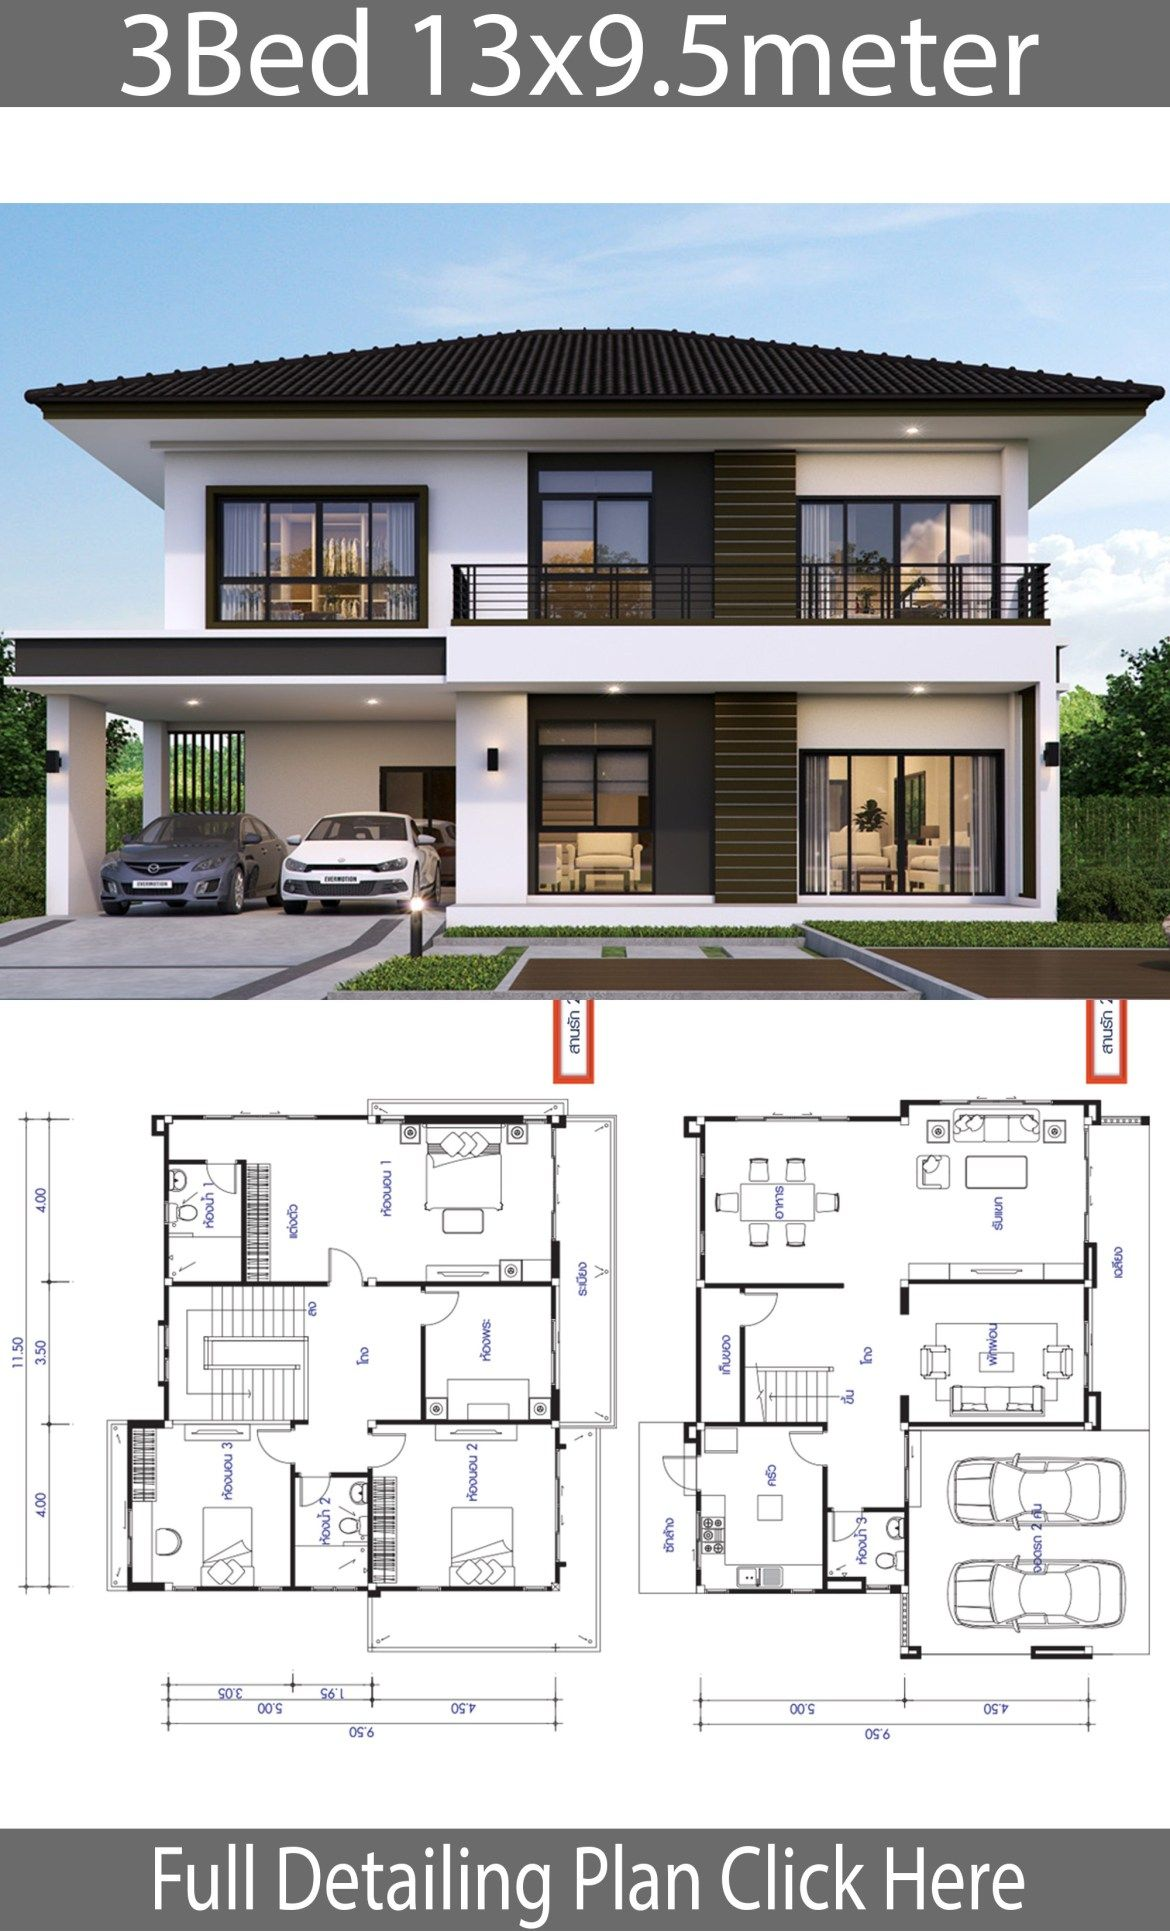 House design plan 13x9.5m with 3 bedrooms | House designs exterior ...